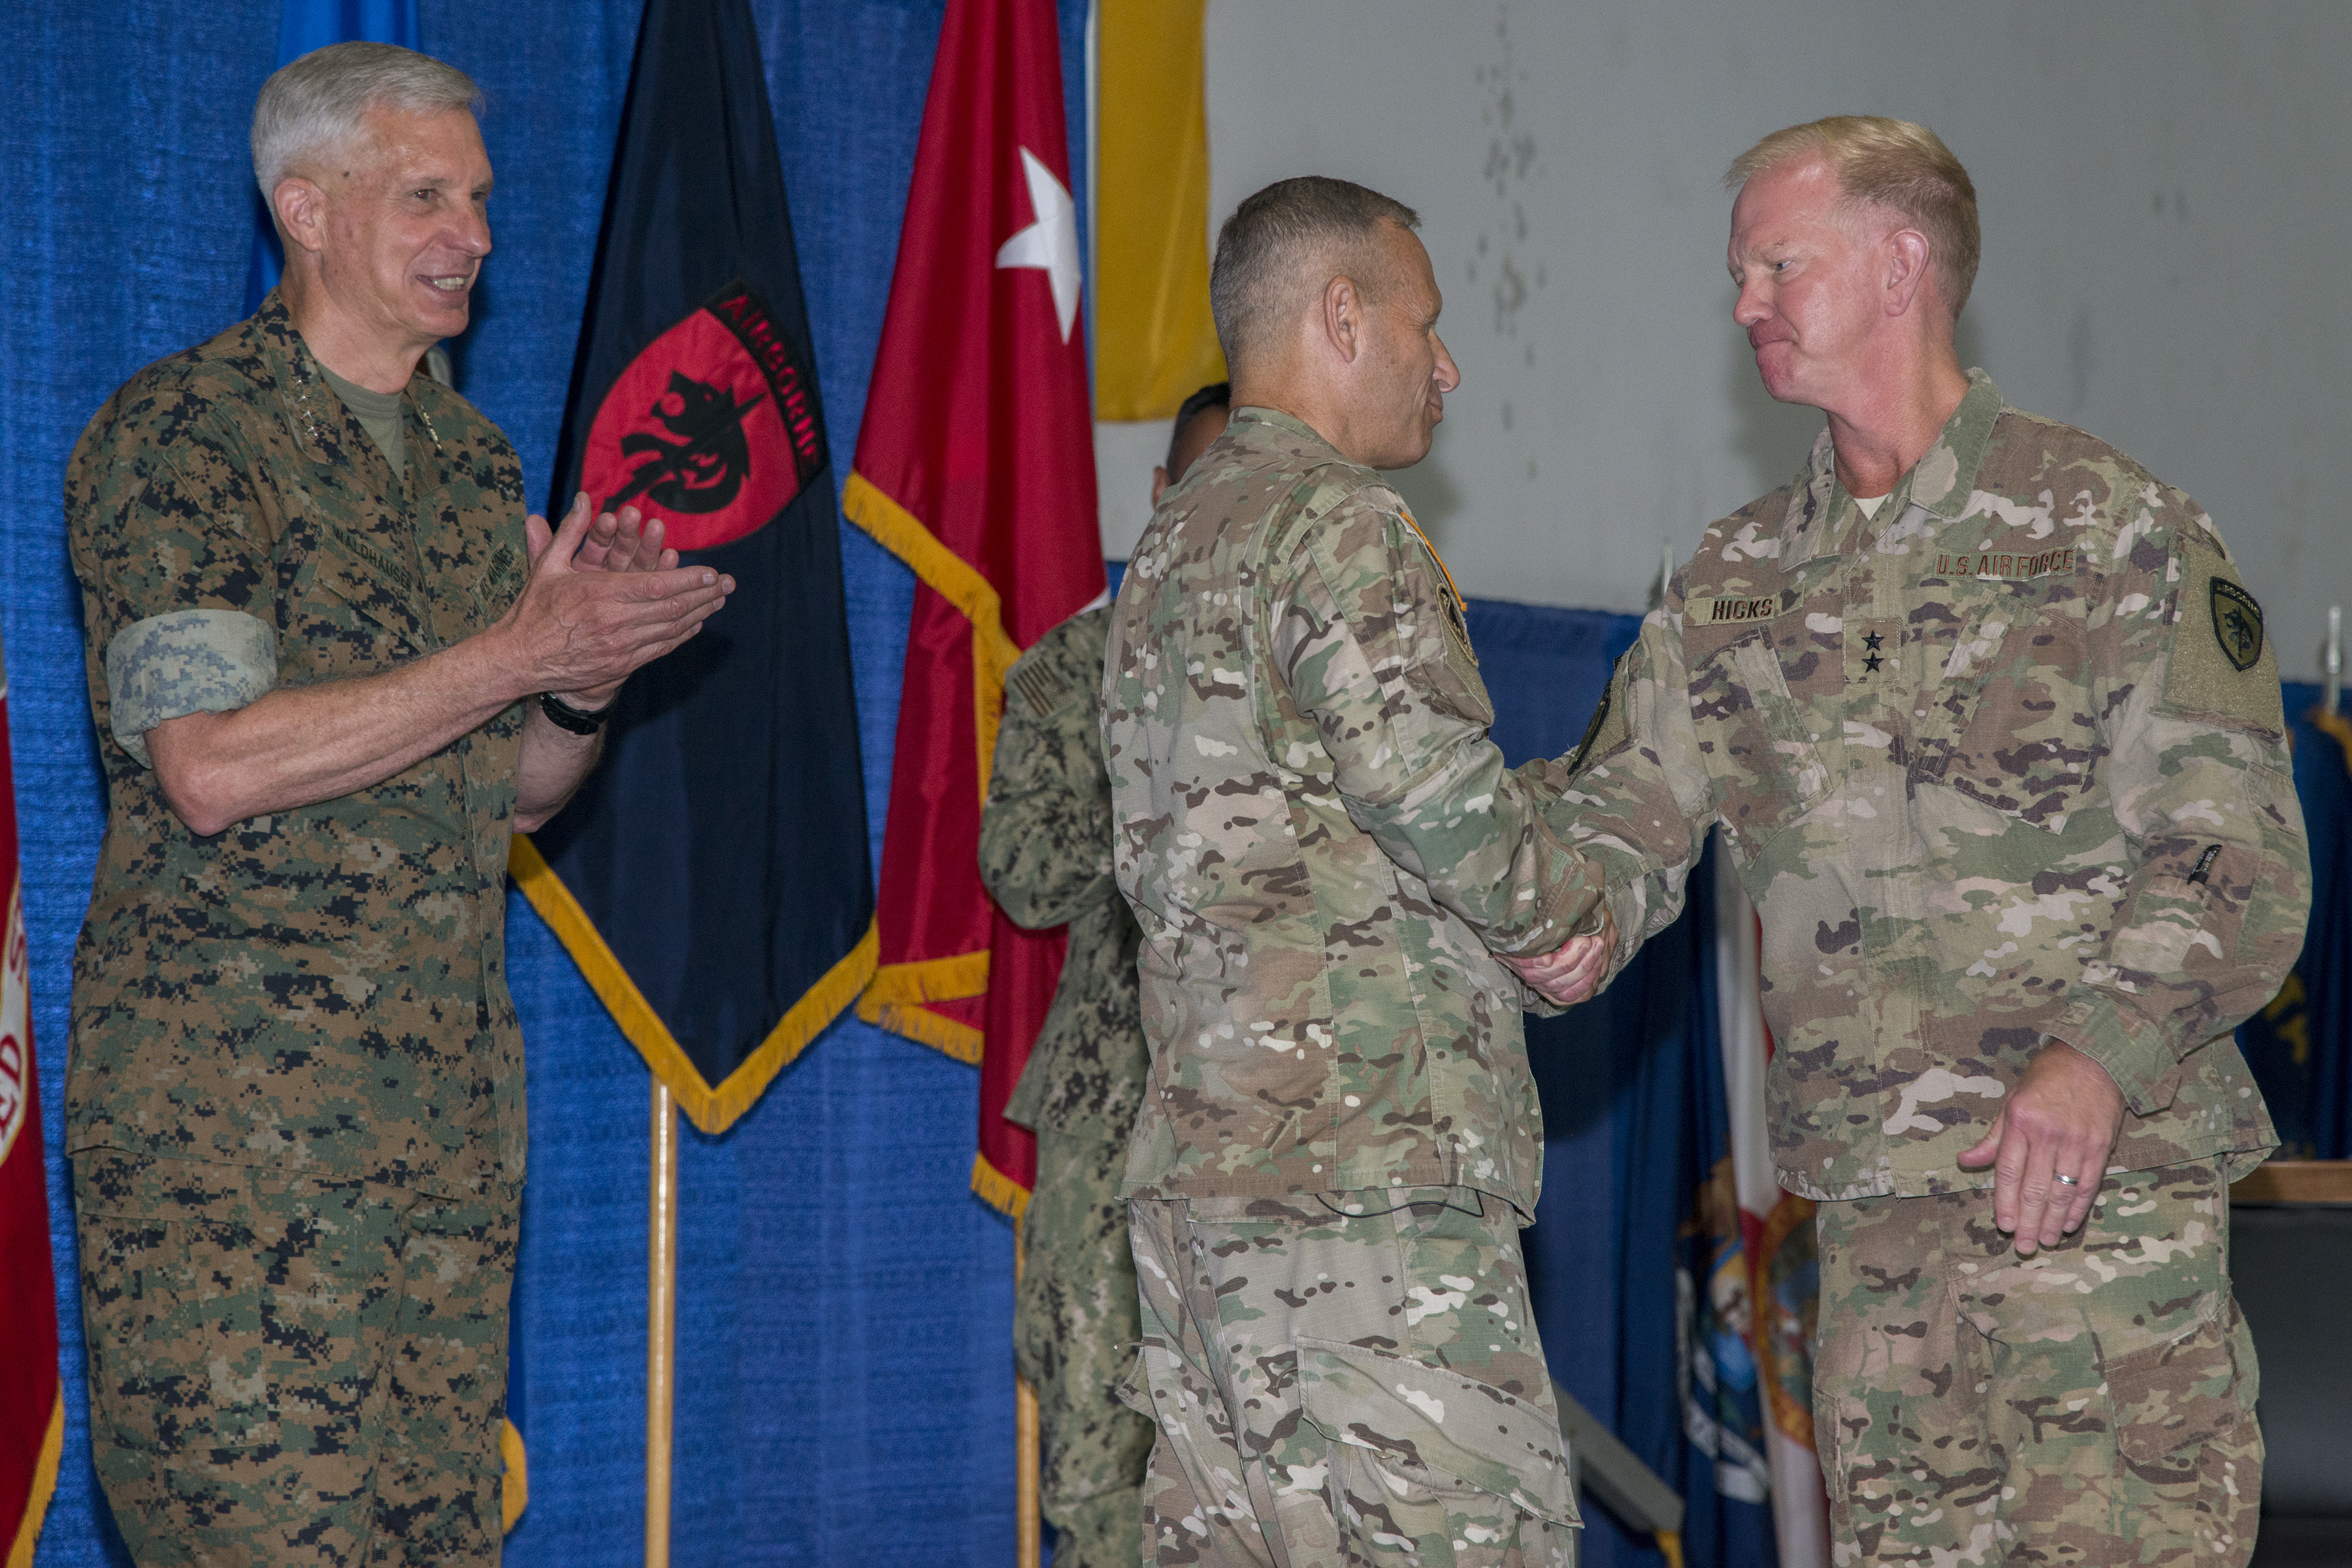 U.S. Air Force Maj. Gen. J. Marcus Hicks, incoming commander of Special Operations Command Africa right shakes hands with U.S. Army Brig. Gen. Donald C. Bolduc, outgoing commander of Special Operations Command Africa, as U.S. Marine Corps Gen. Thomas D. Waldhauser, commander of U.S. Africa Command, looks on during a change of command ceremony for Special Operations Command Africa at Kelley Barracks, Stuttgart, Germany, June 29, 2017. Special Operations Command Africa supports U.S. Africa Command by counter violent extremist organizations, building the military capacity of key partners in Africa and protecting U.S. personnel and facilities. (U.S. Army photo by Visual Information Specialist Eric Steen)